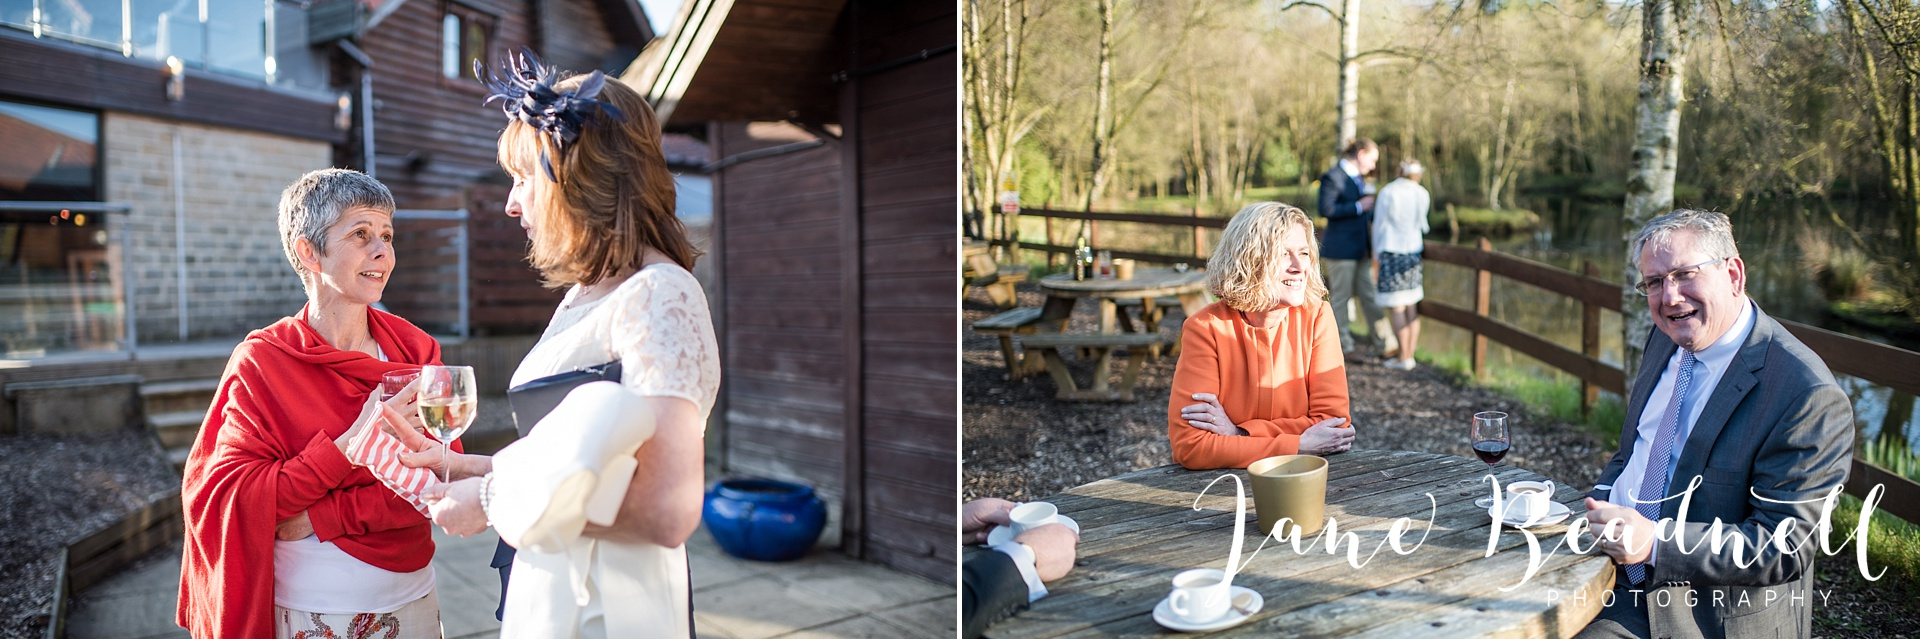 Otley Chevin Lodge wedding photography by Jane Beadnell Photography Leeds_0159